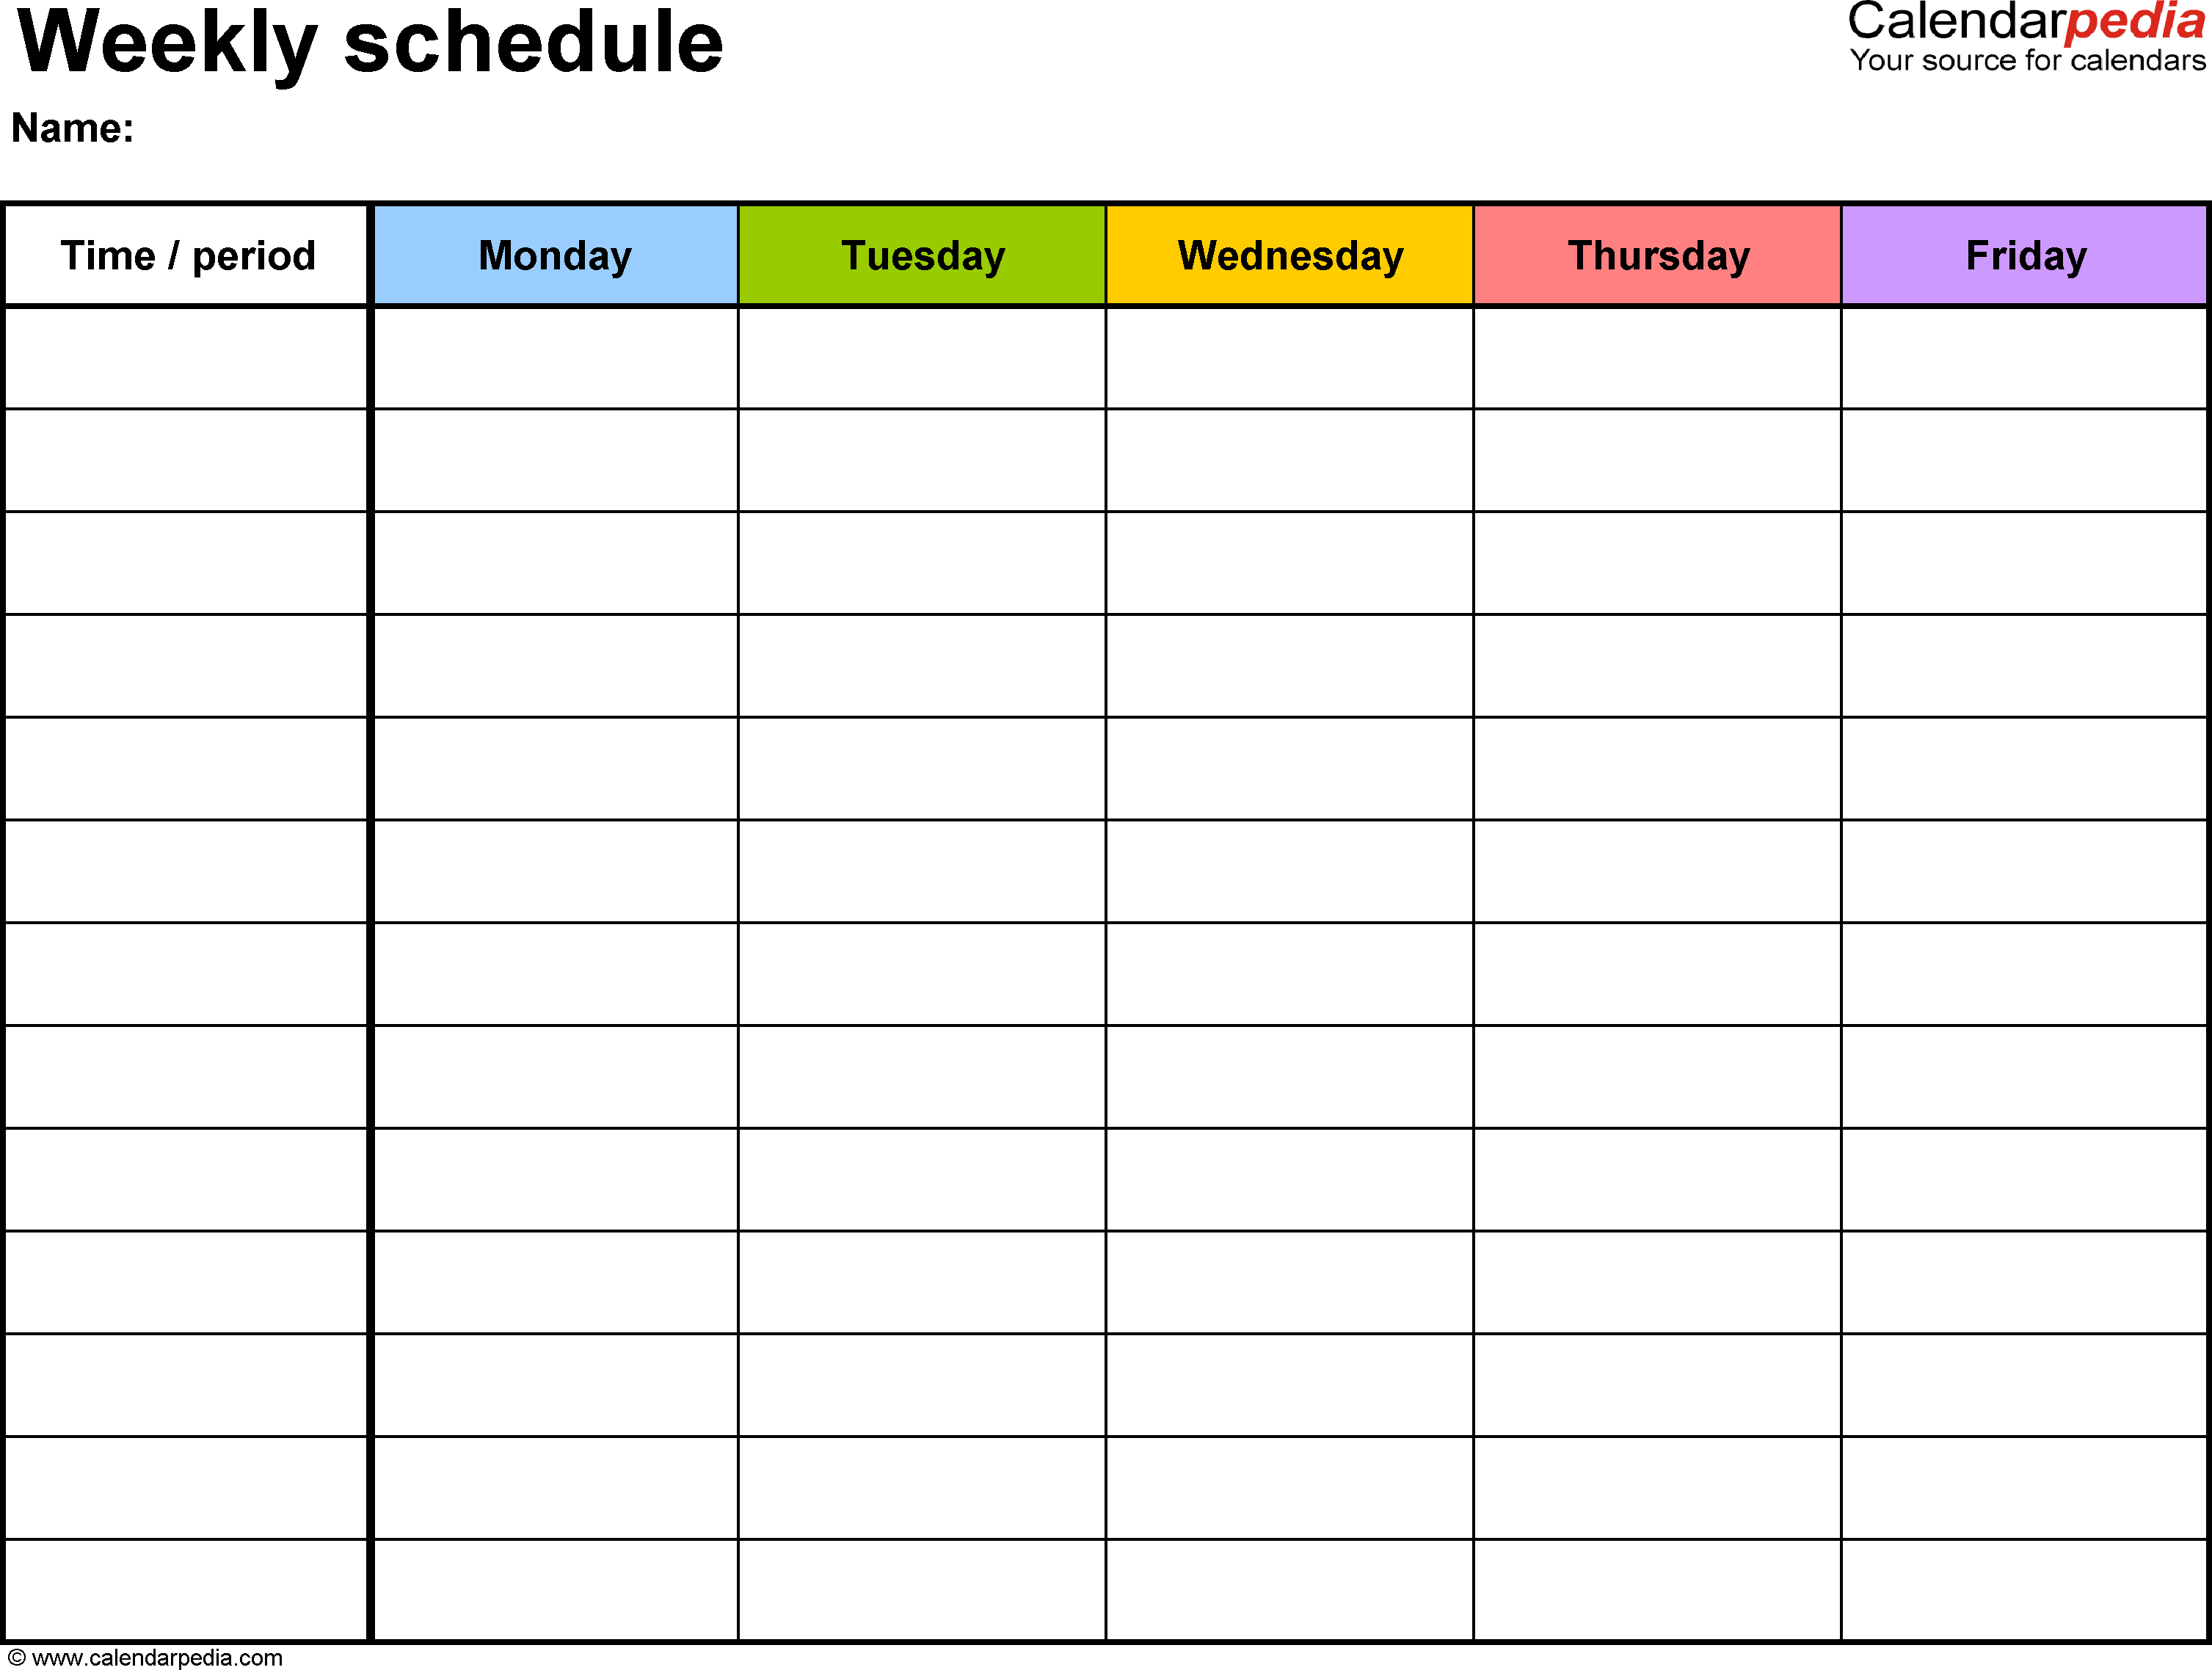 Free Weekly Schedule Templates For Excel - 18 Templates inside Blank Spreadsheets